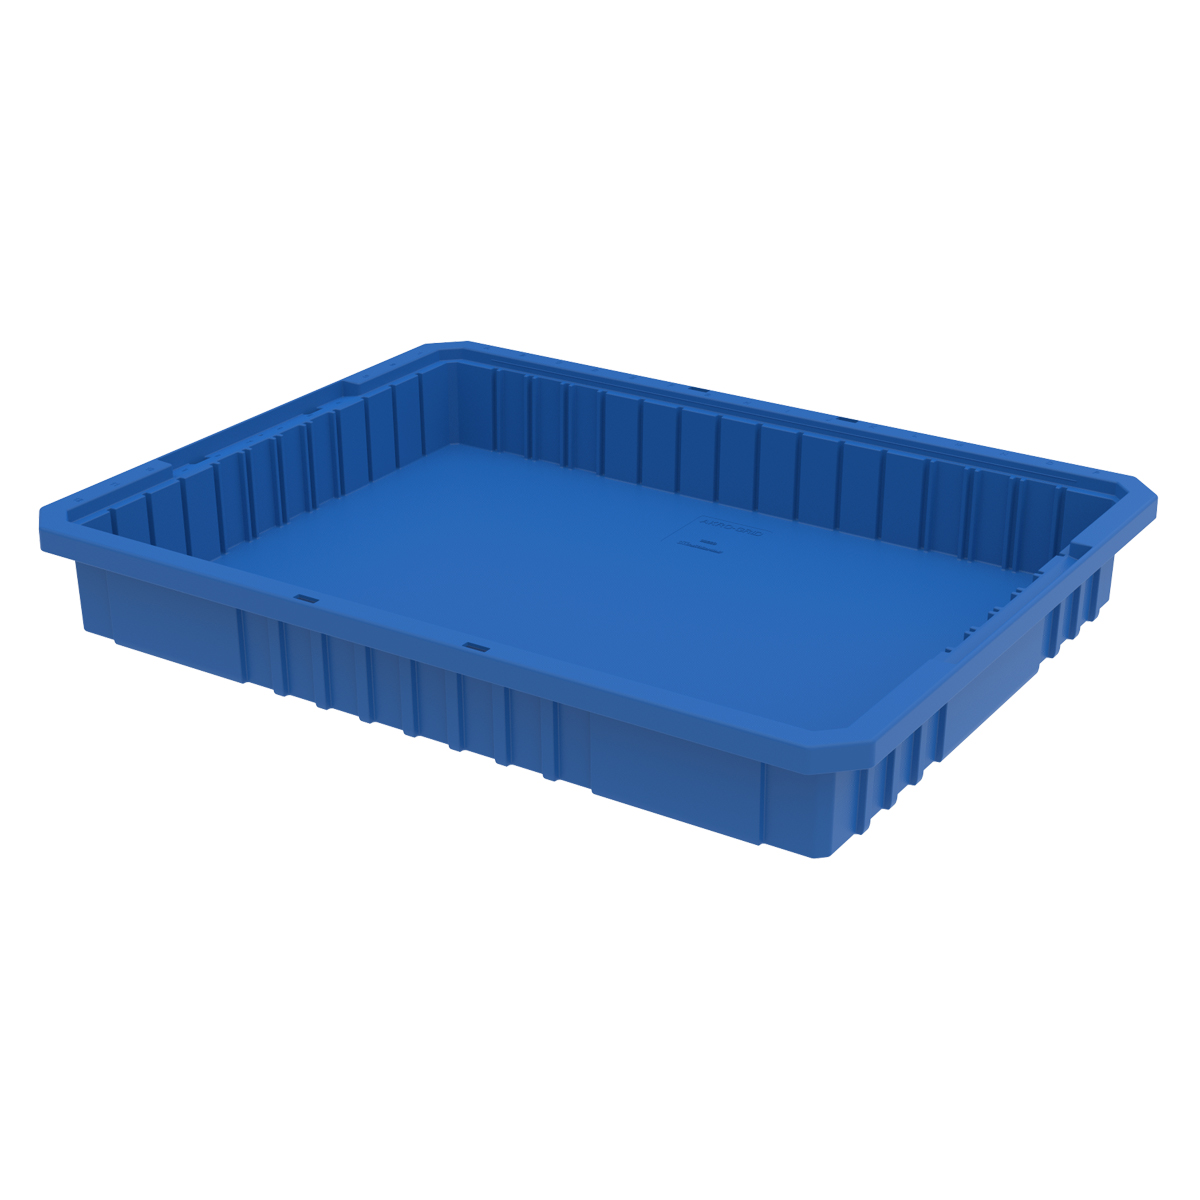 Akro-Grid Dividable Box 22-1/2 x 17-3/8 x 3, Blue (33223BLUE).  This item sold in carton quantities of 6.